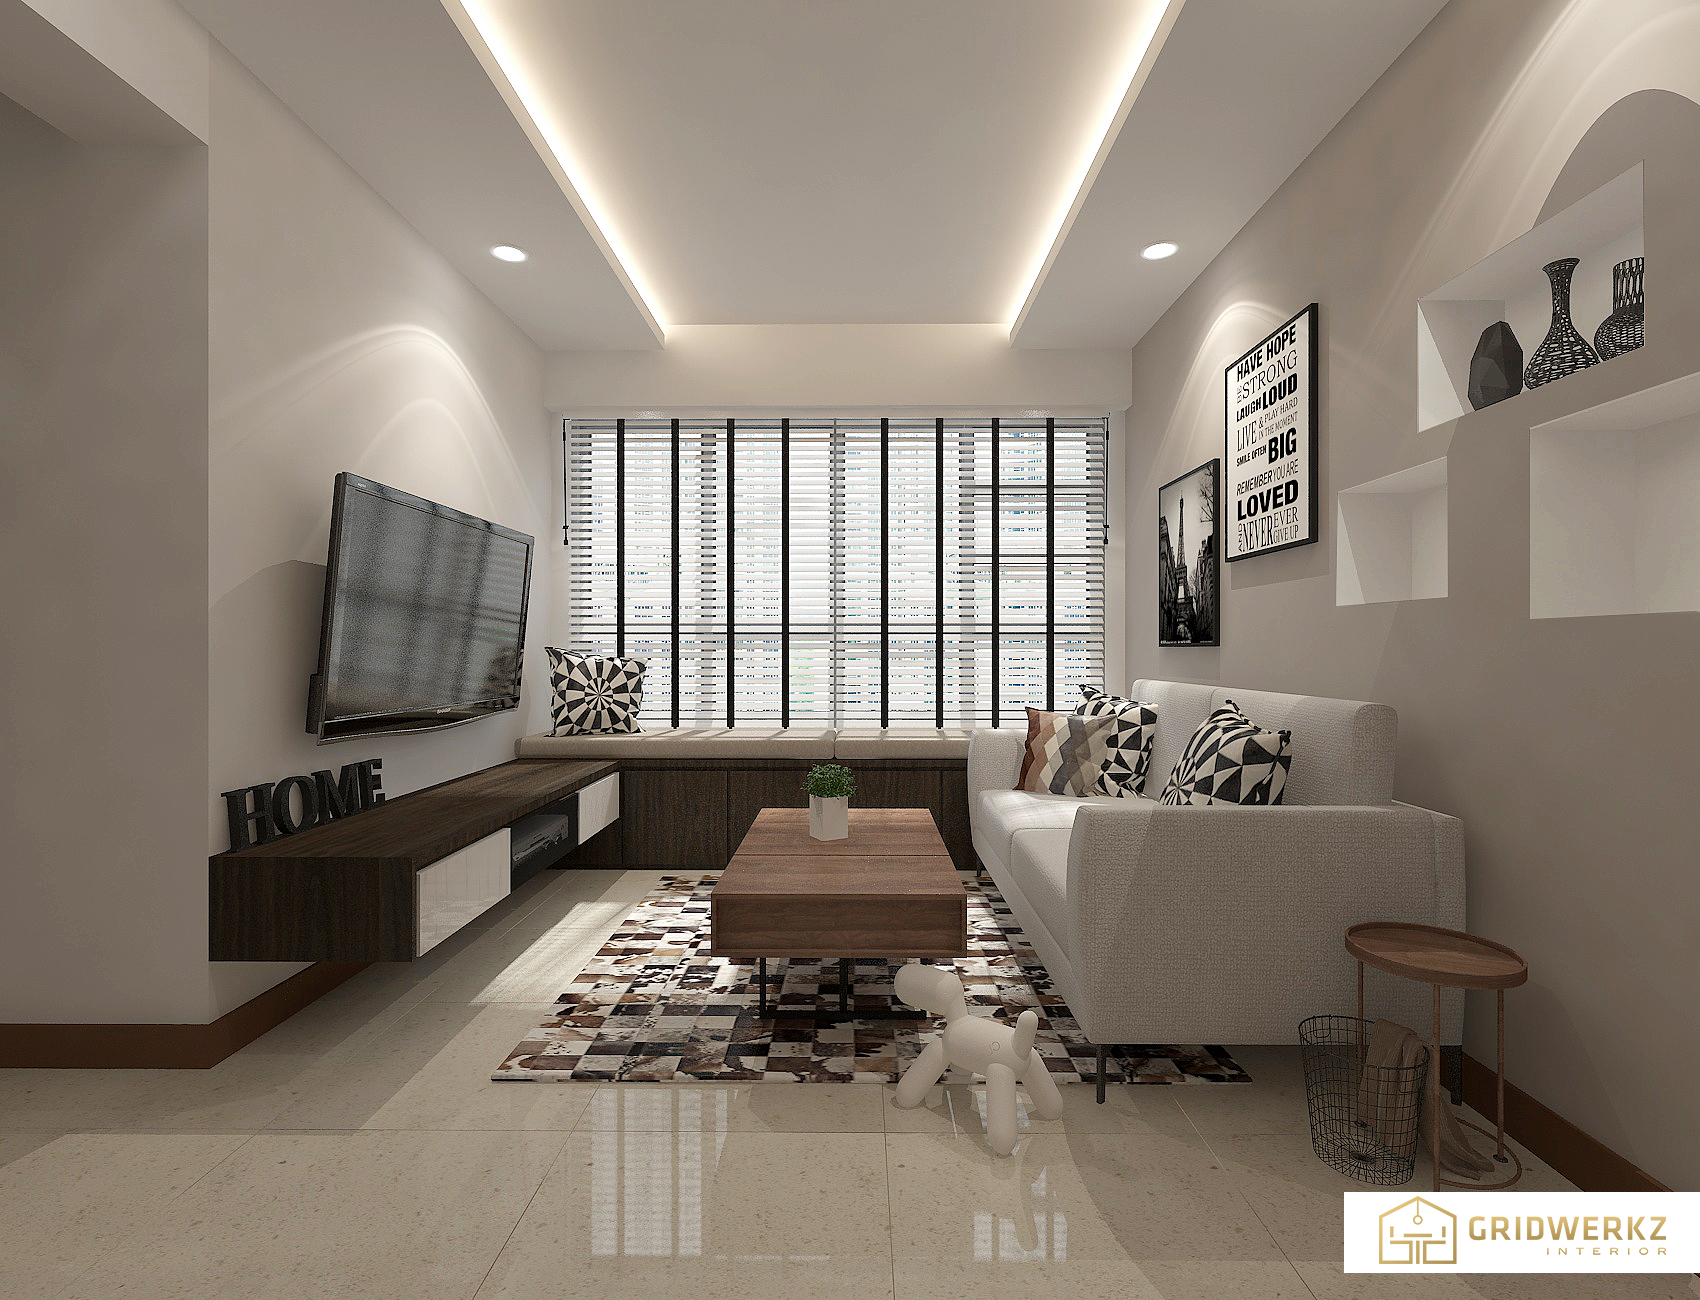 Project living design by Gridwerkz Interior.